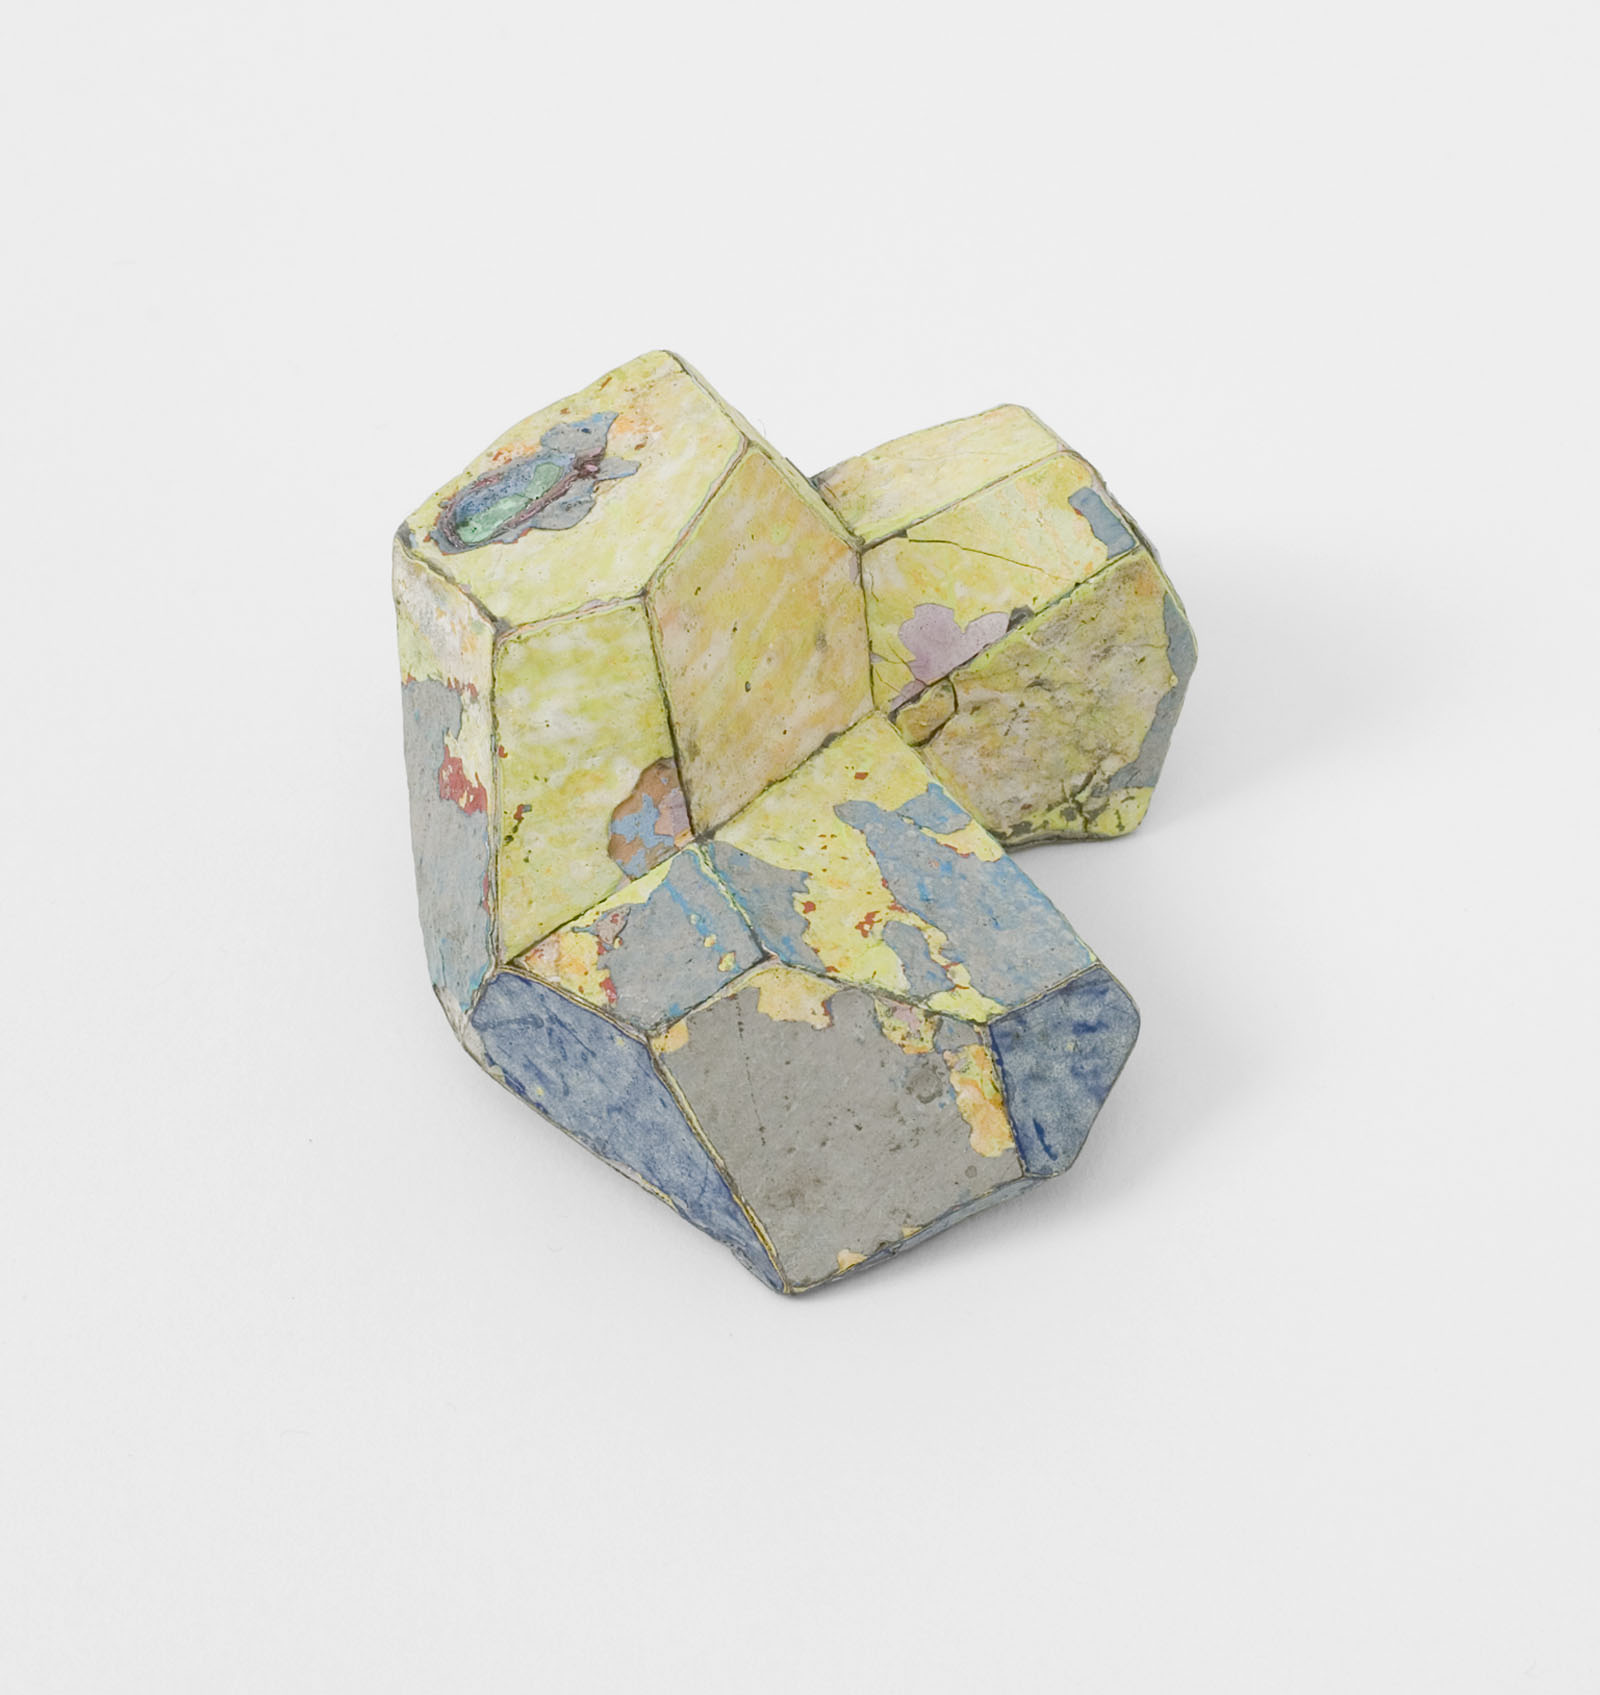 """Bright Yellow"" I Brooch, 2012 I Graffiti, silver, stainless steel I Photo: Mirei Takeuchi"